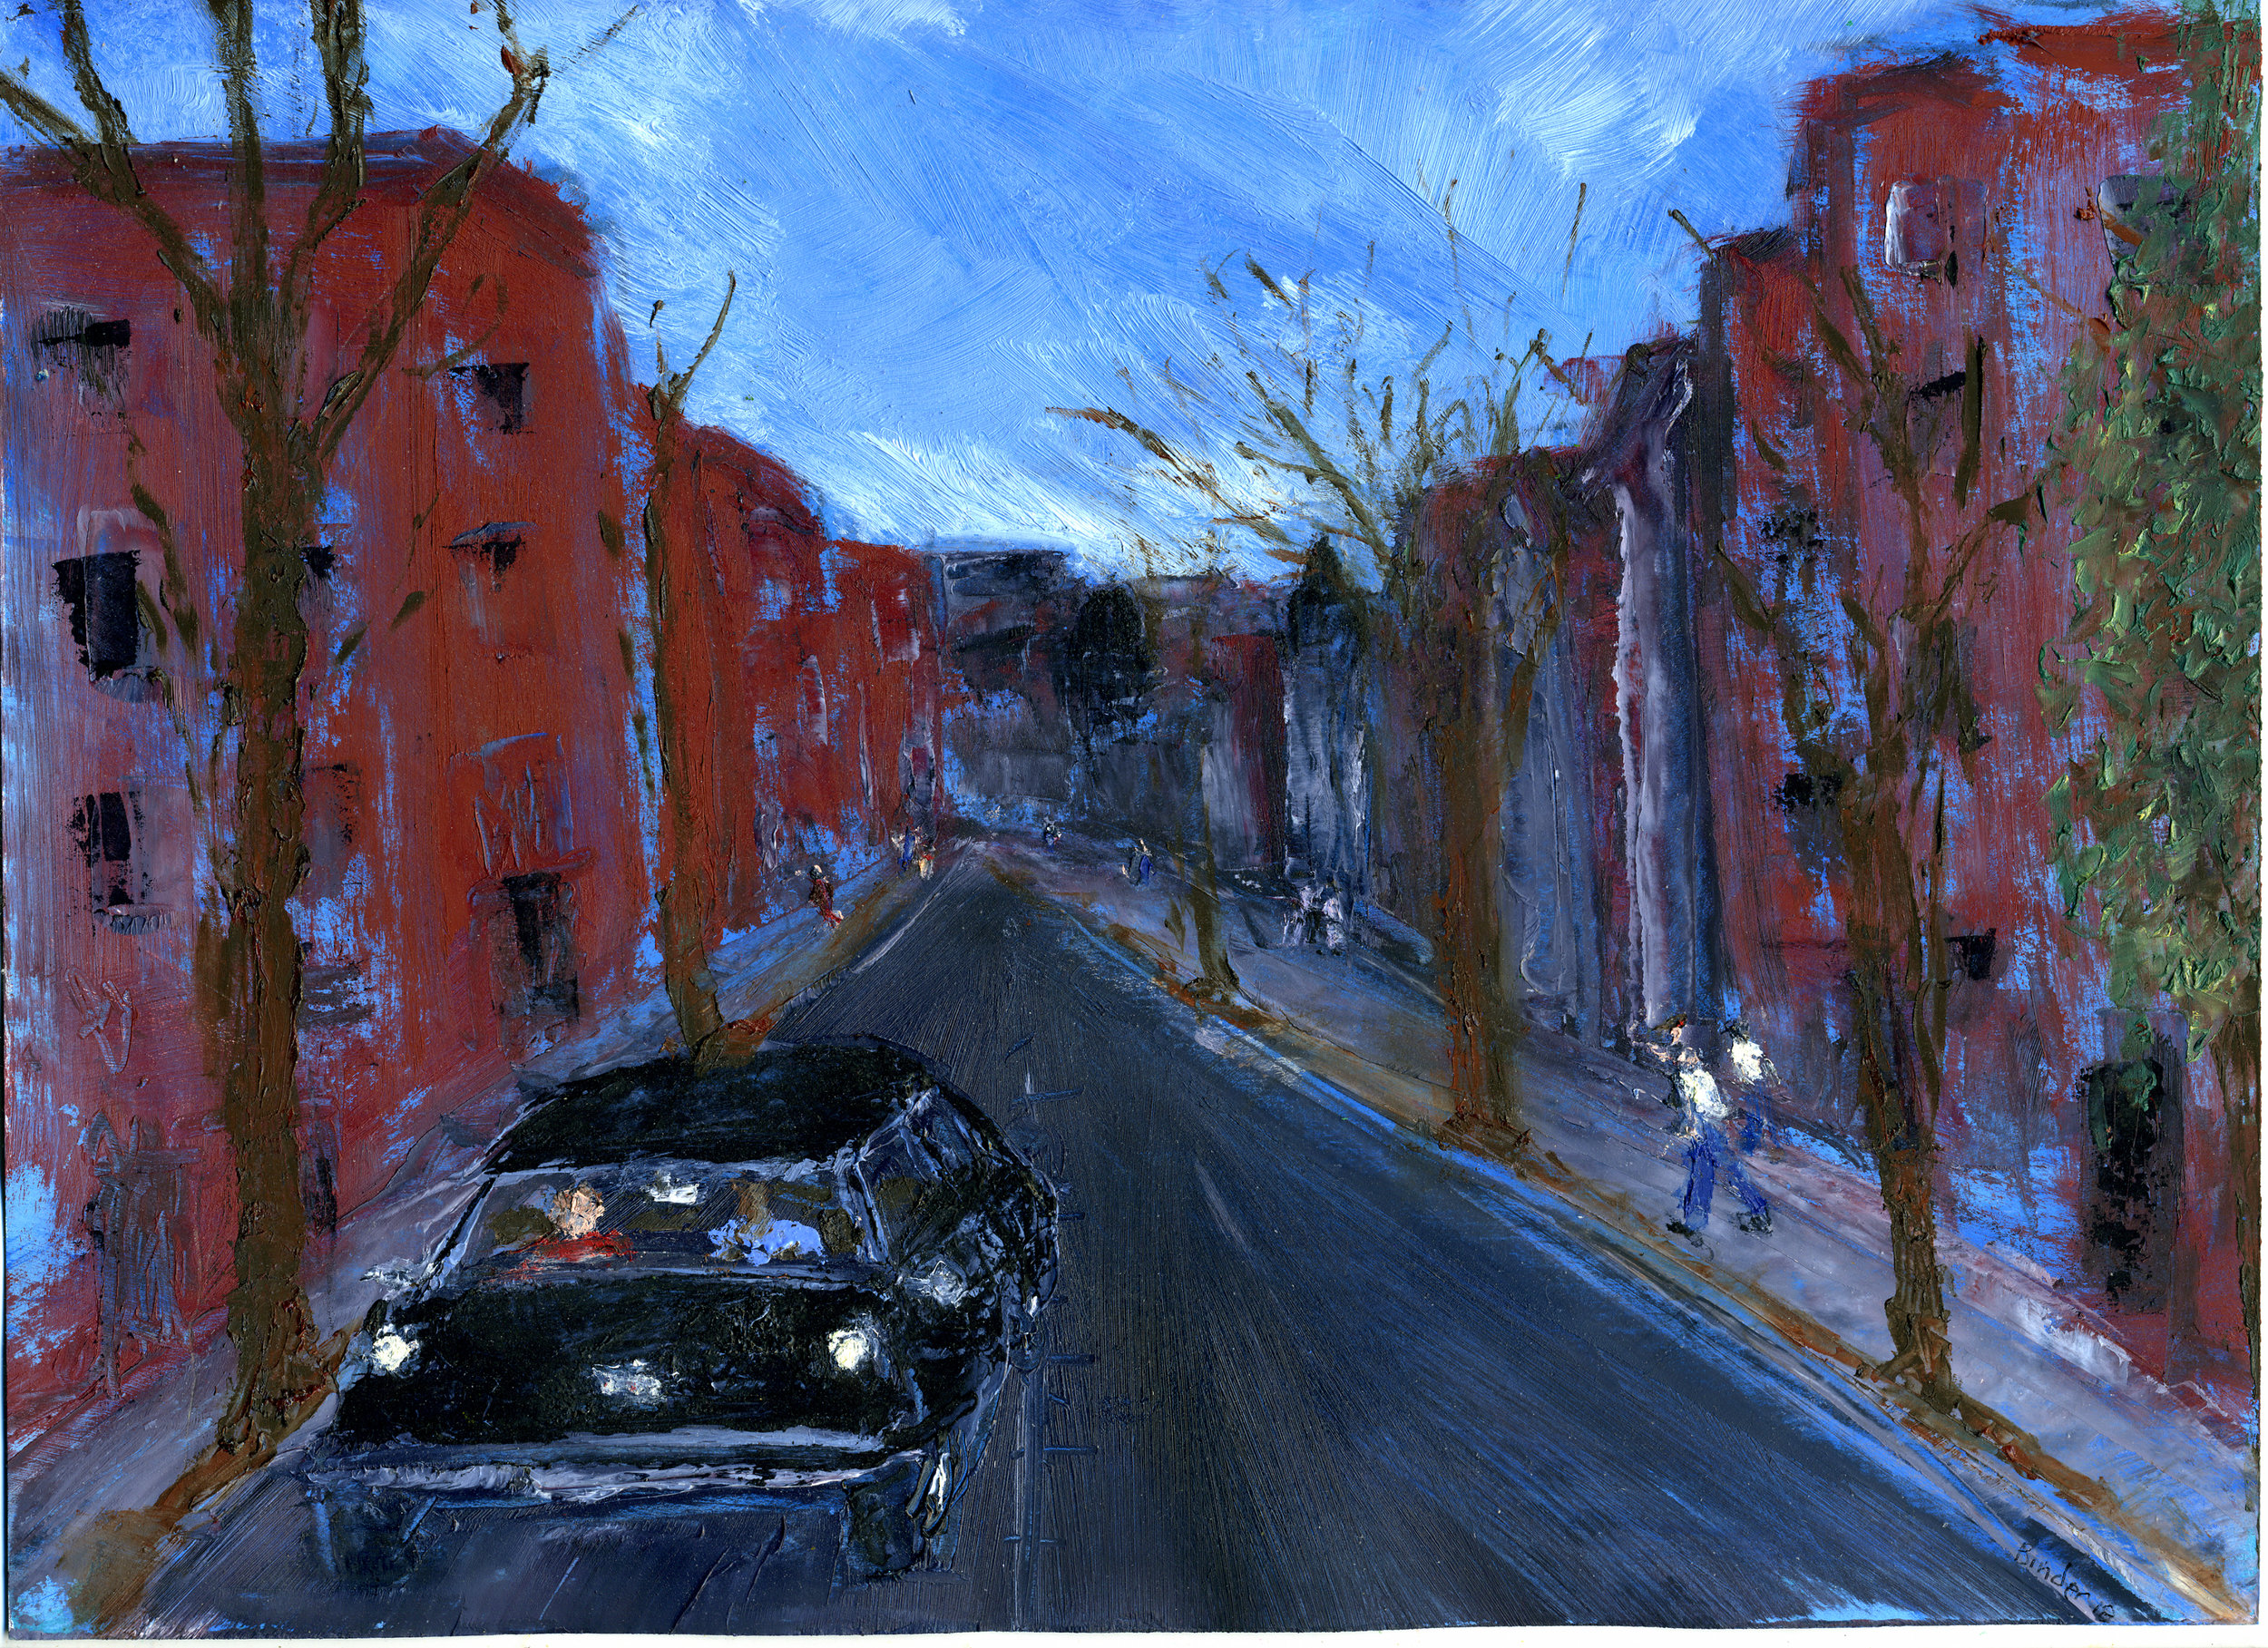 "29th & N (South)   Oil on paper  9"" x 11-1/2""  $385  Click image to enlarge   Inquire"